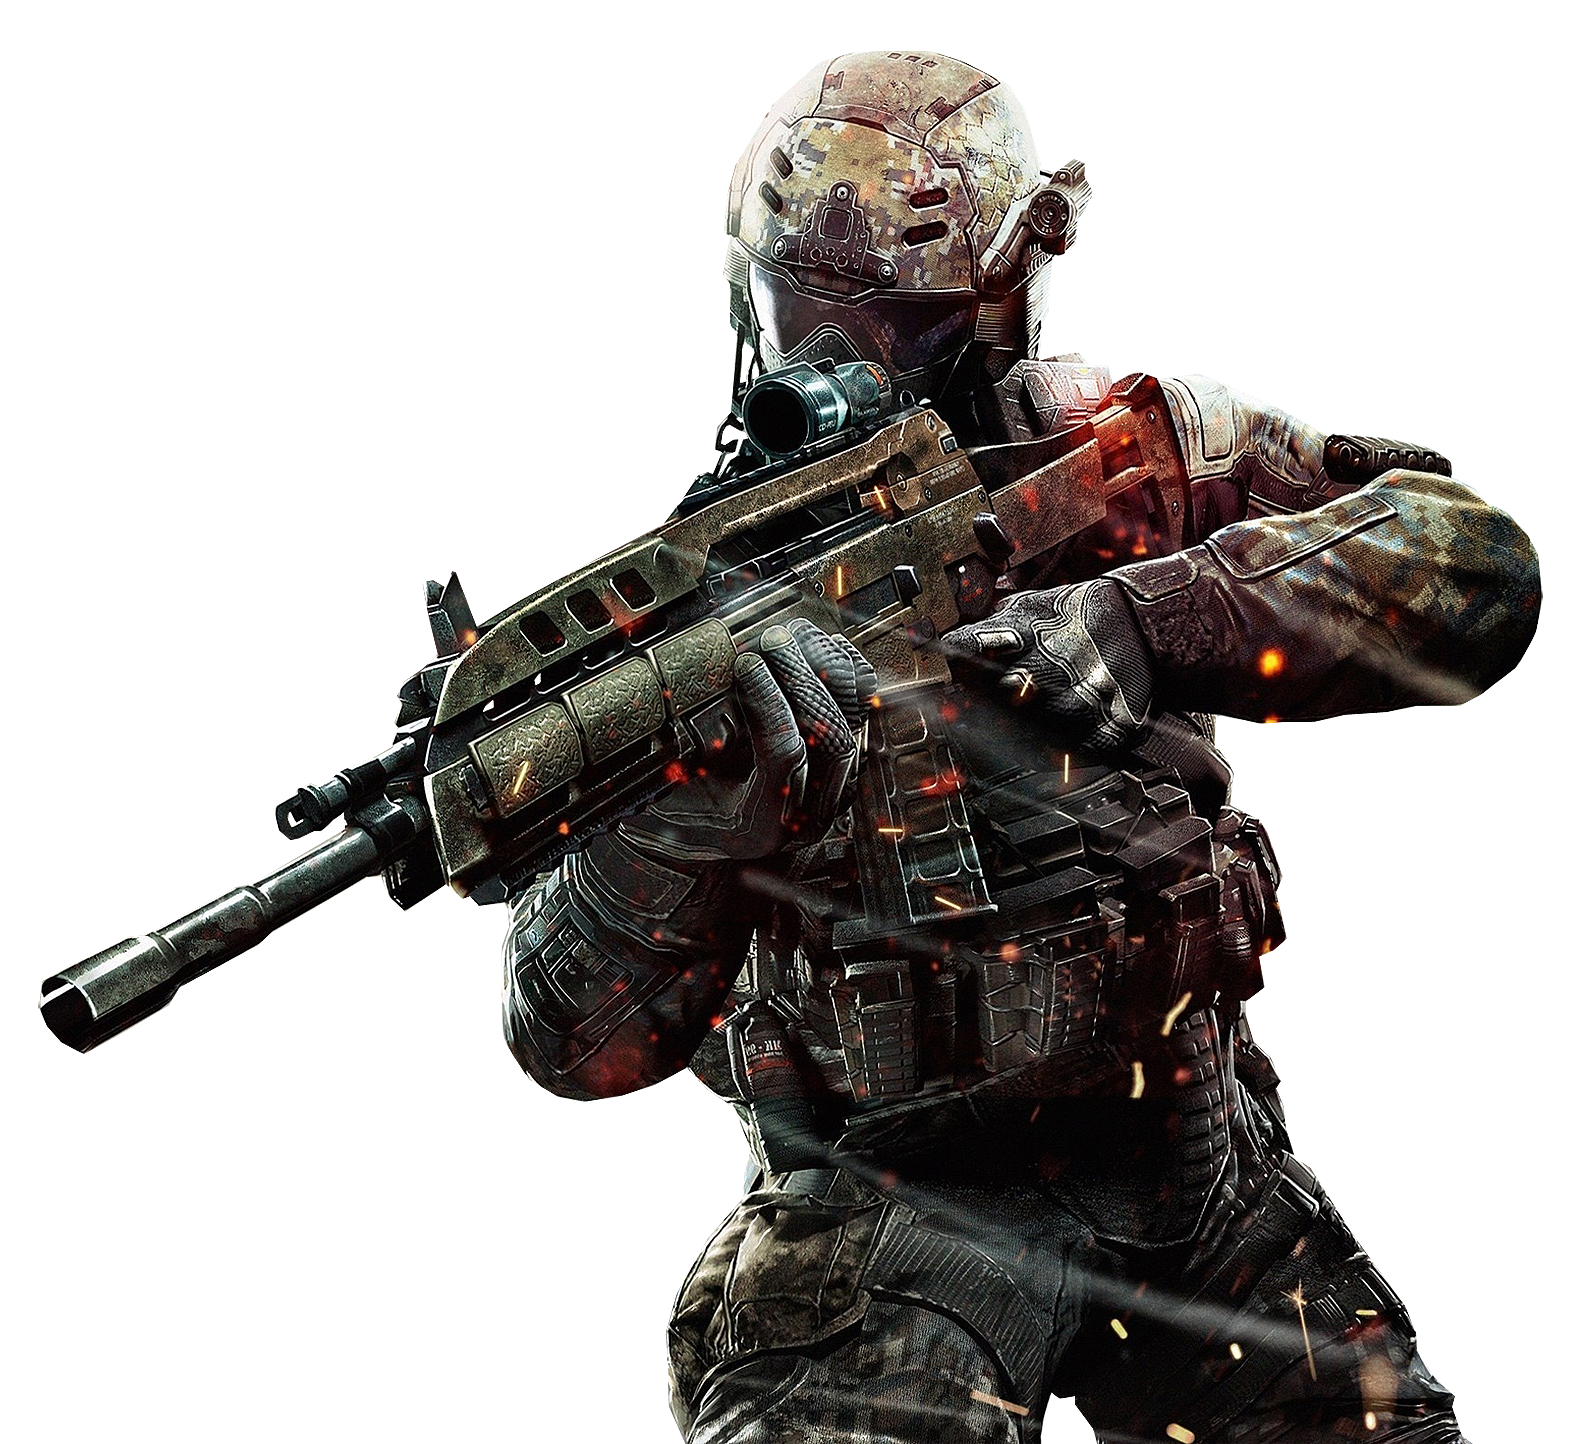 Call Of Duty Png Black image #43300